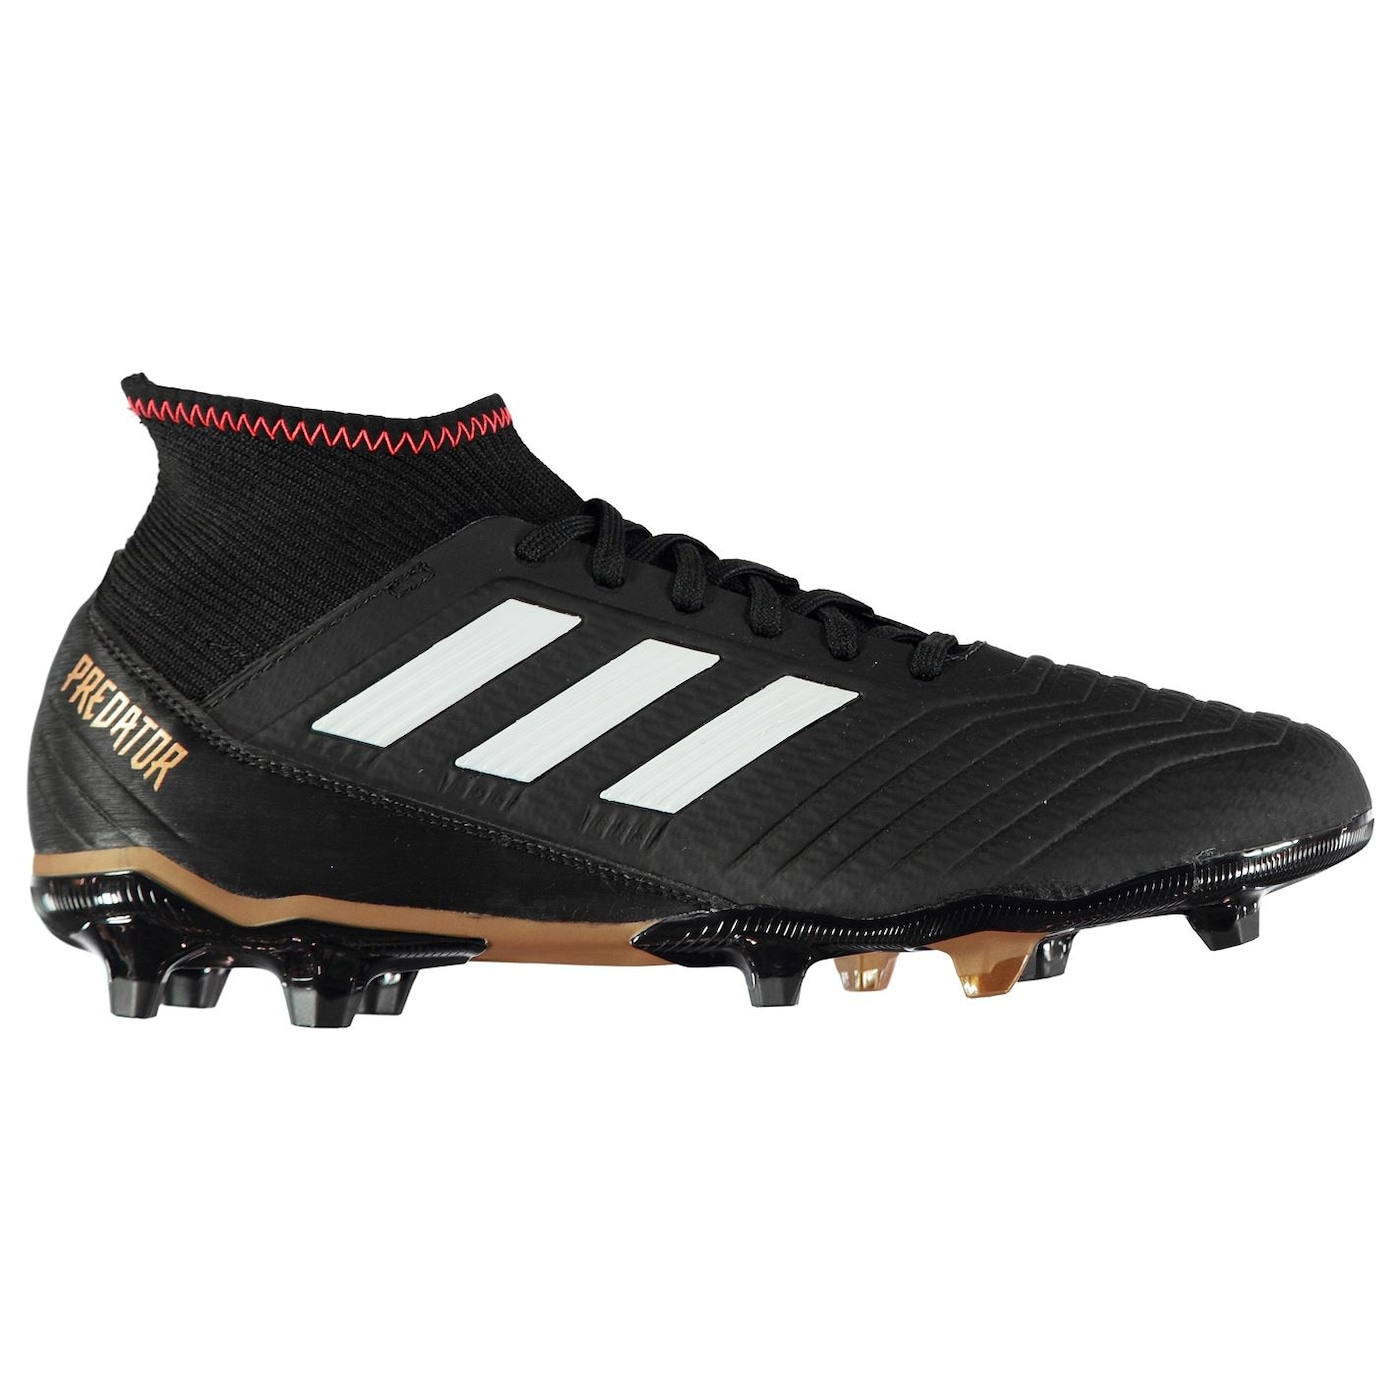 Adidas Predator 18.3 Mens FG Football Boots